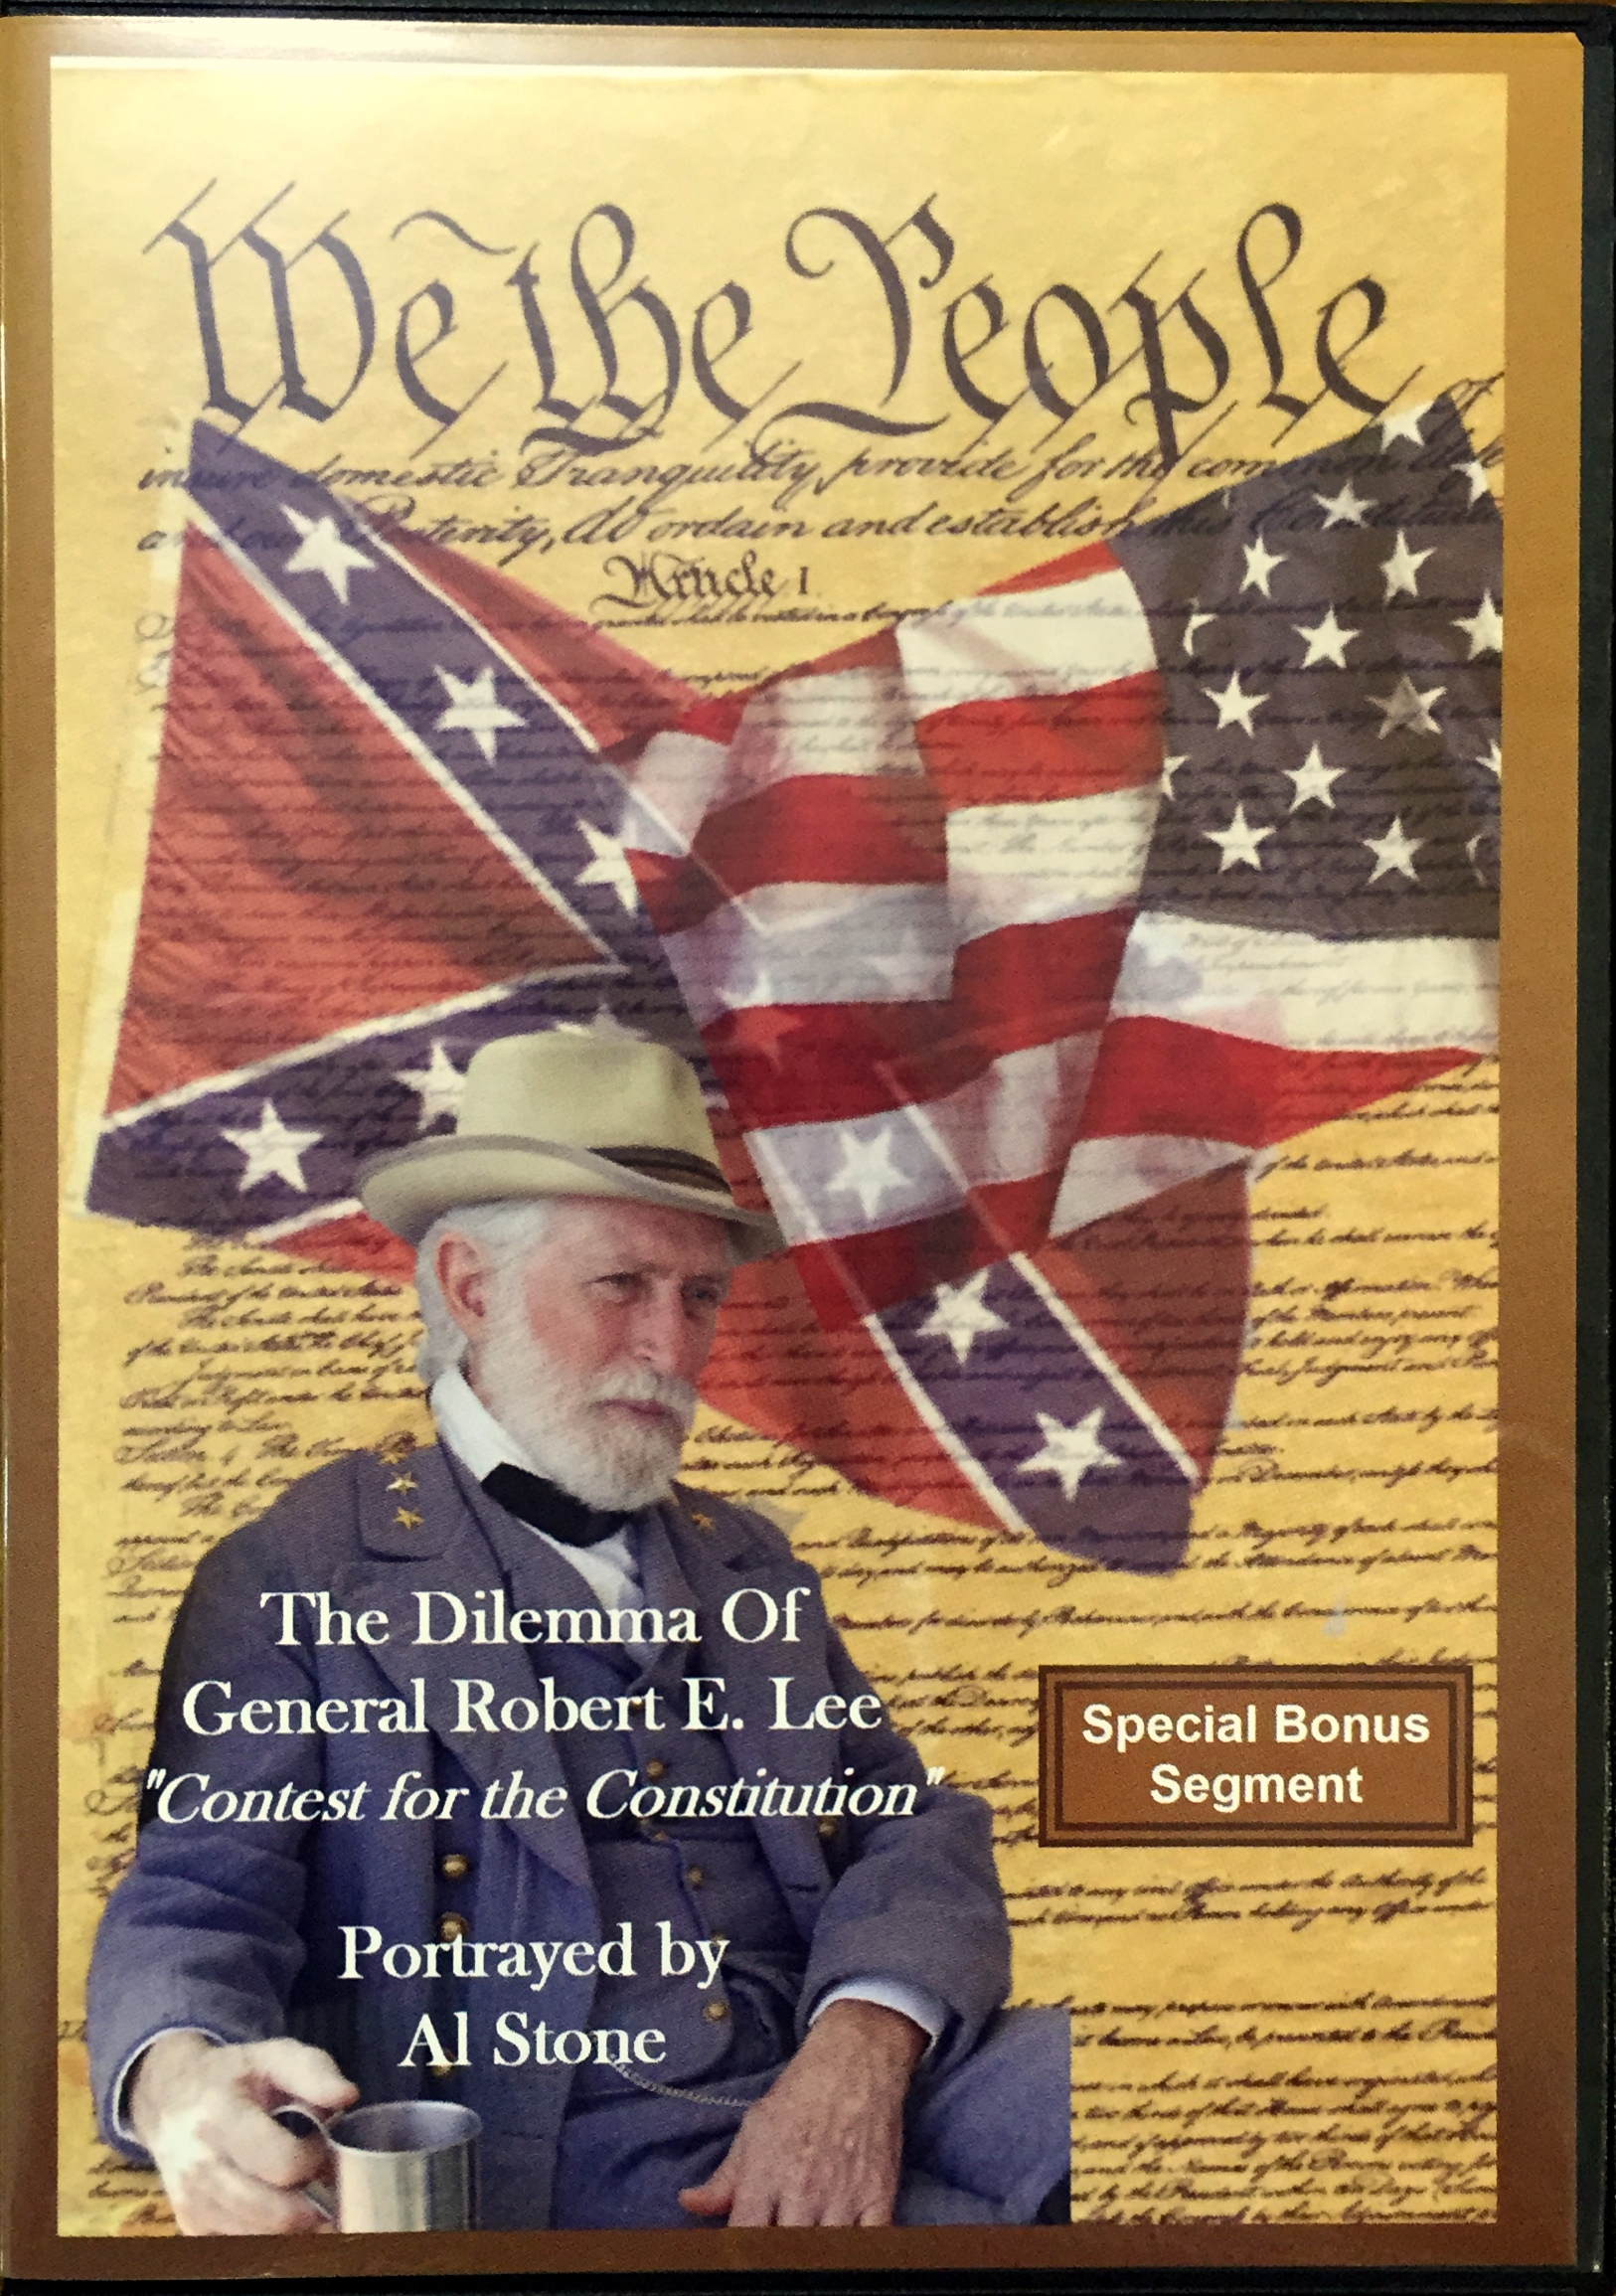 a history of the constitution in the confederate states of america Preamble we, the people of the confederate states, each state acting in its sovereign and independent character, in order to form a permanent federal government, establish justice, insure domestic tranquillity, and secure the blessings of liberty to ourselves and our posterity invoking the favor and guidance of almighty god do ordain and establish this constitution for the confederate states .